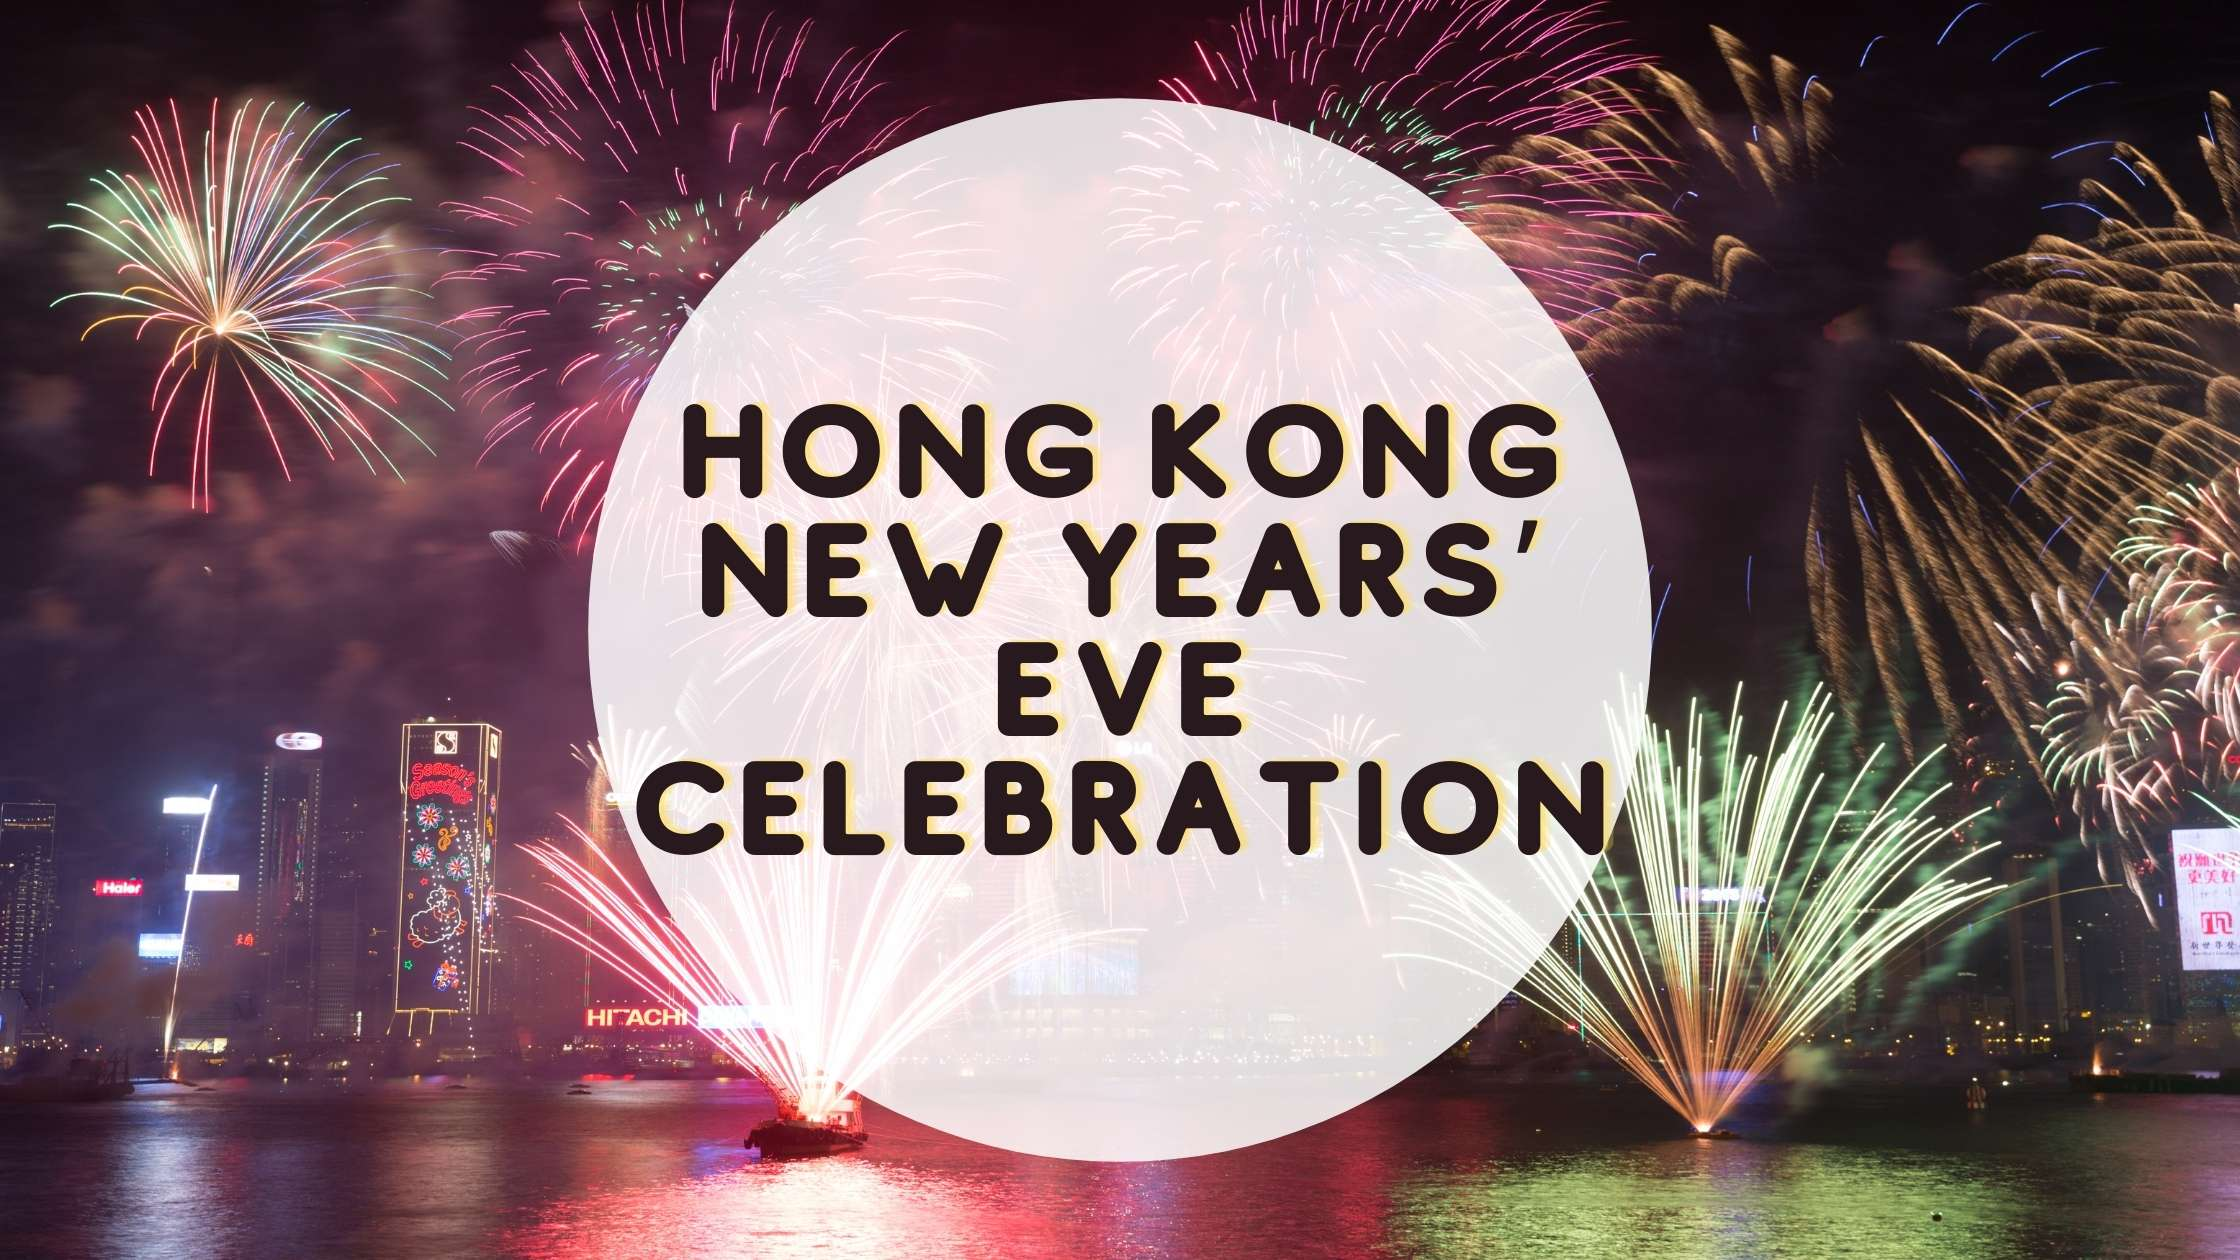 HONG KONG NEW YEARS' EVE Celebration